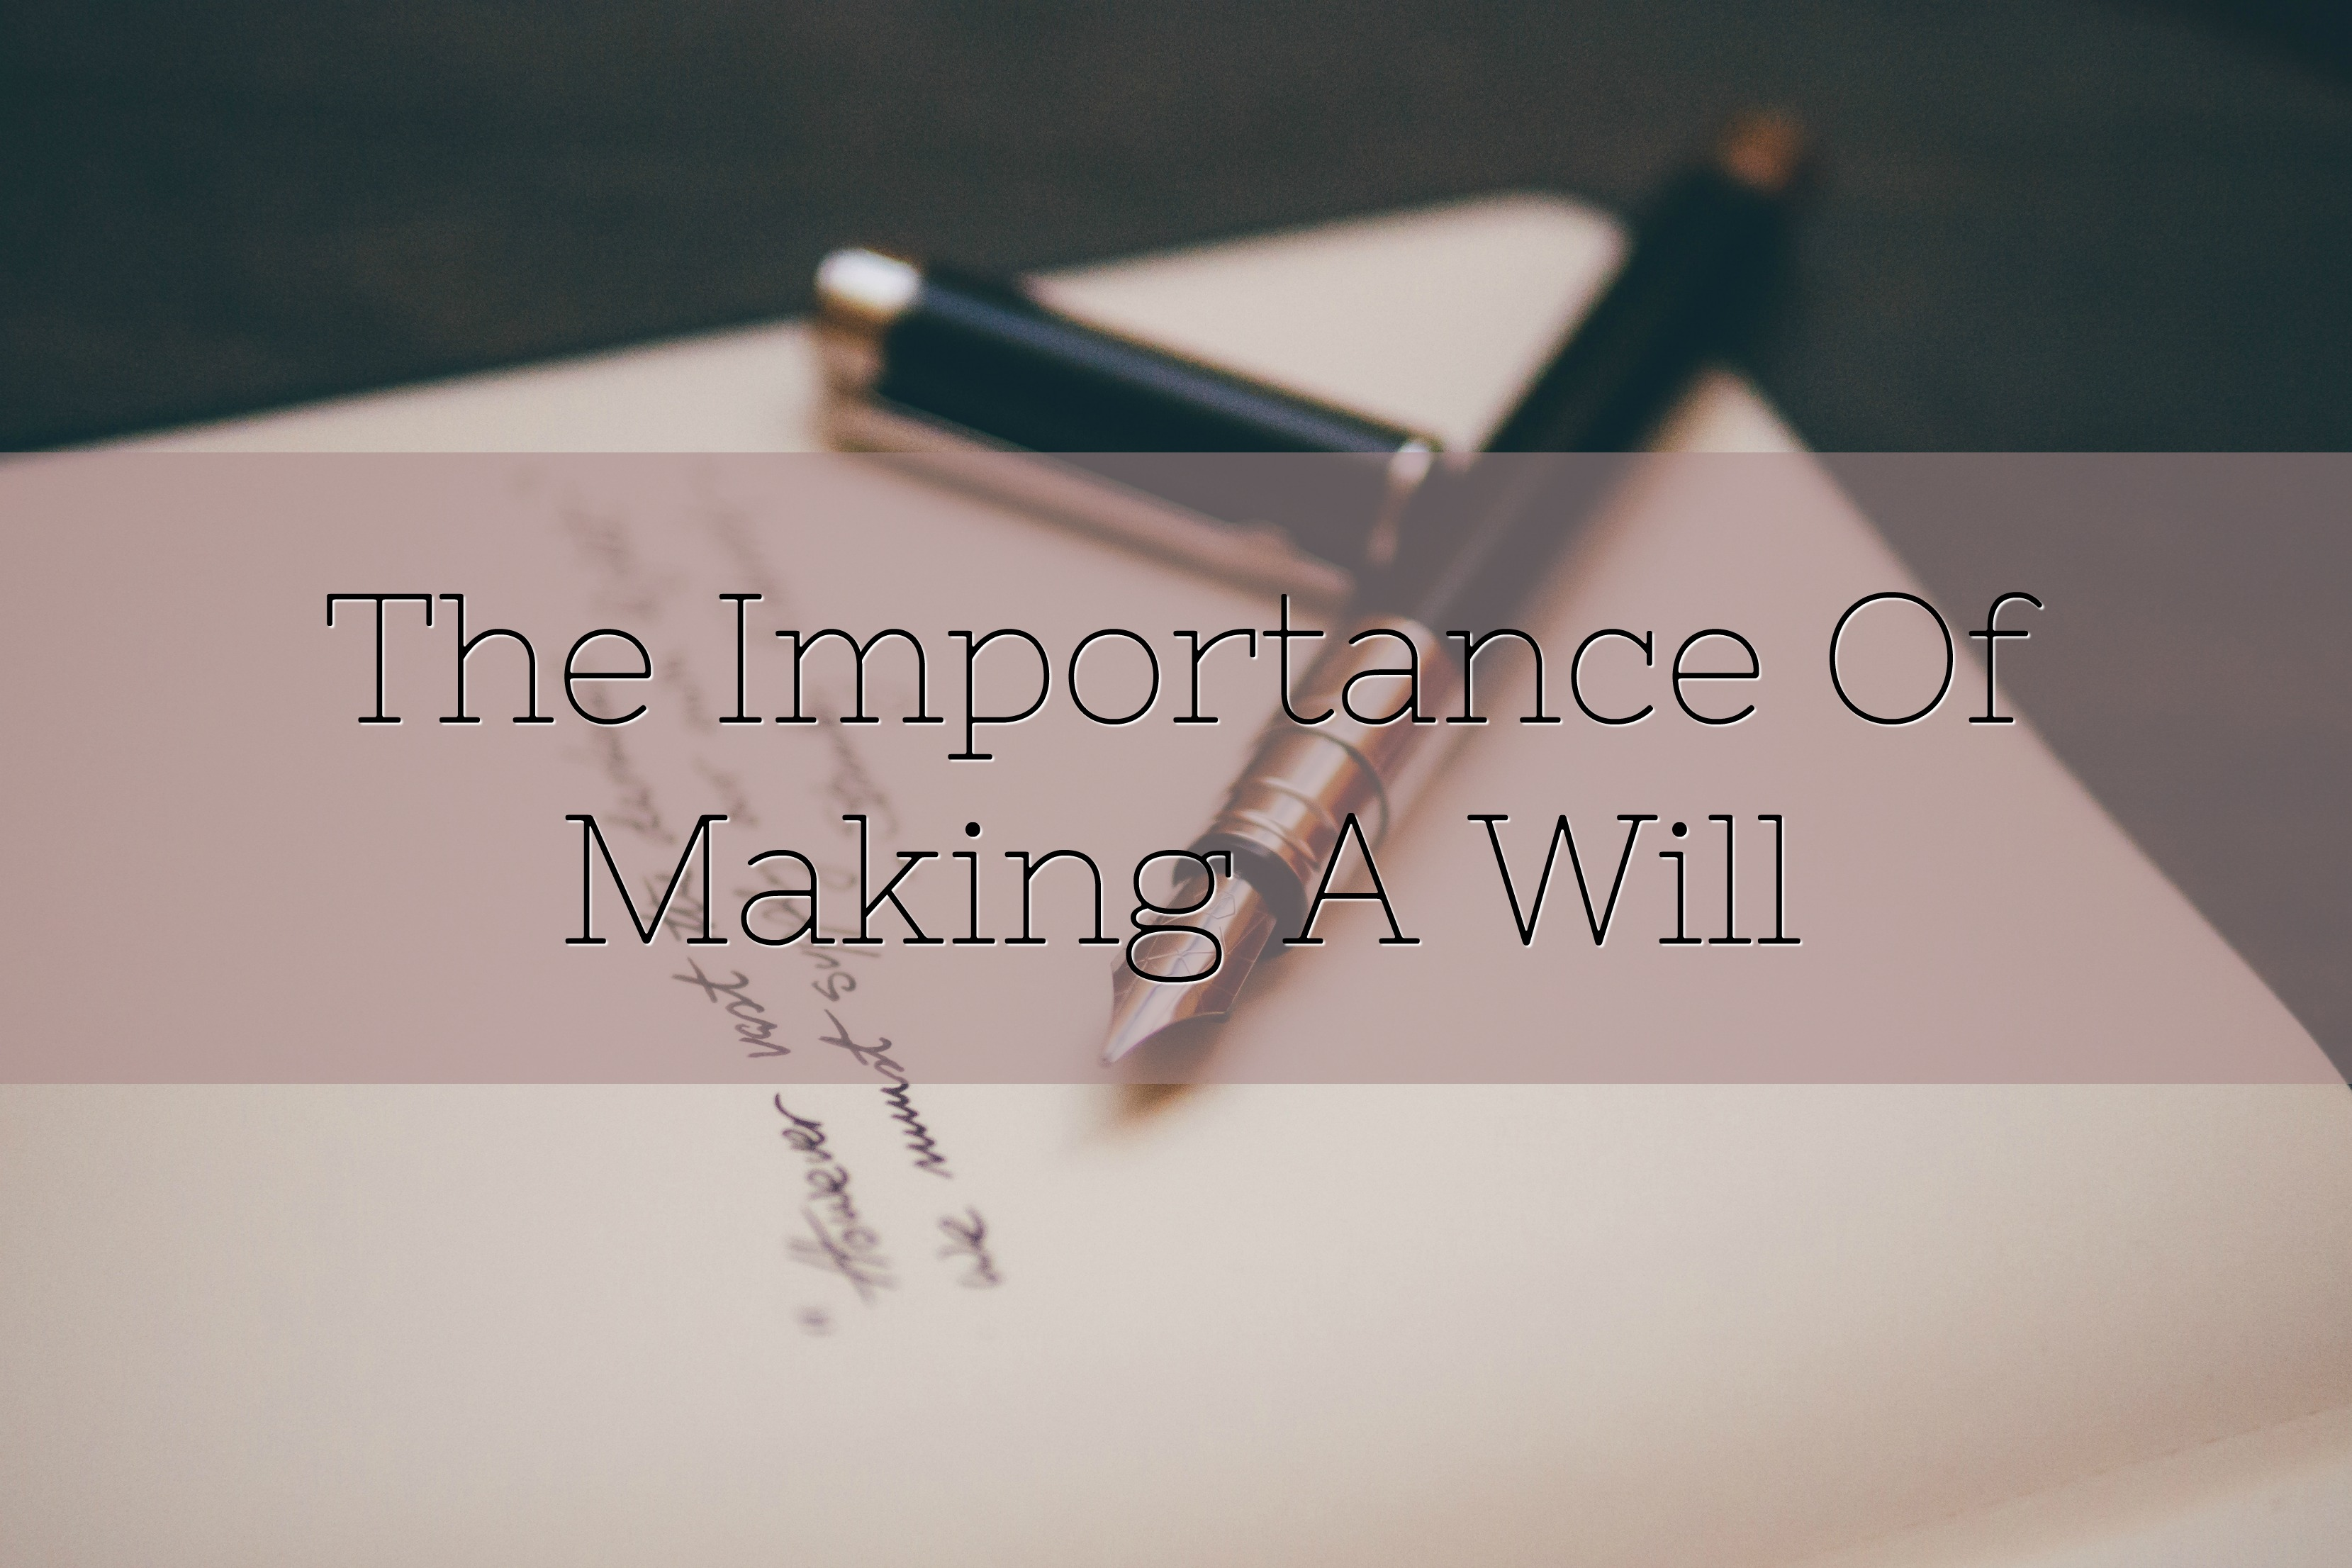 making a will title